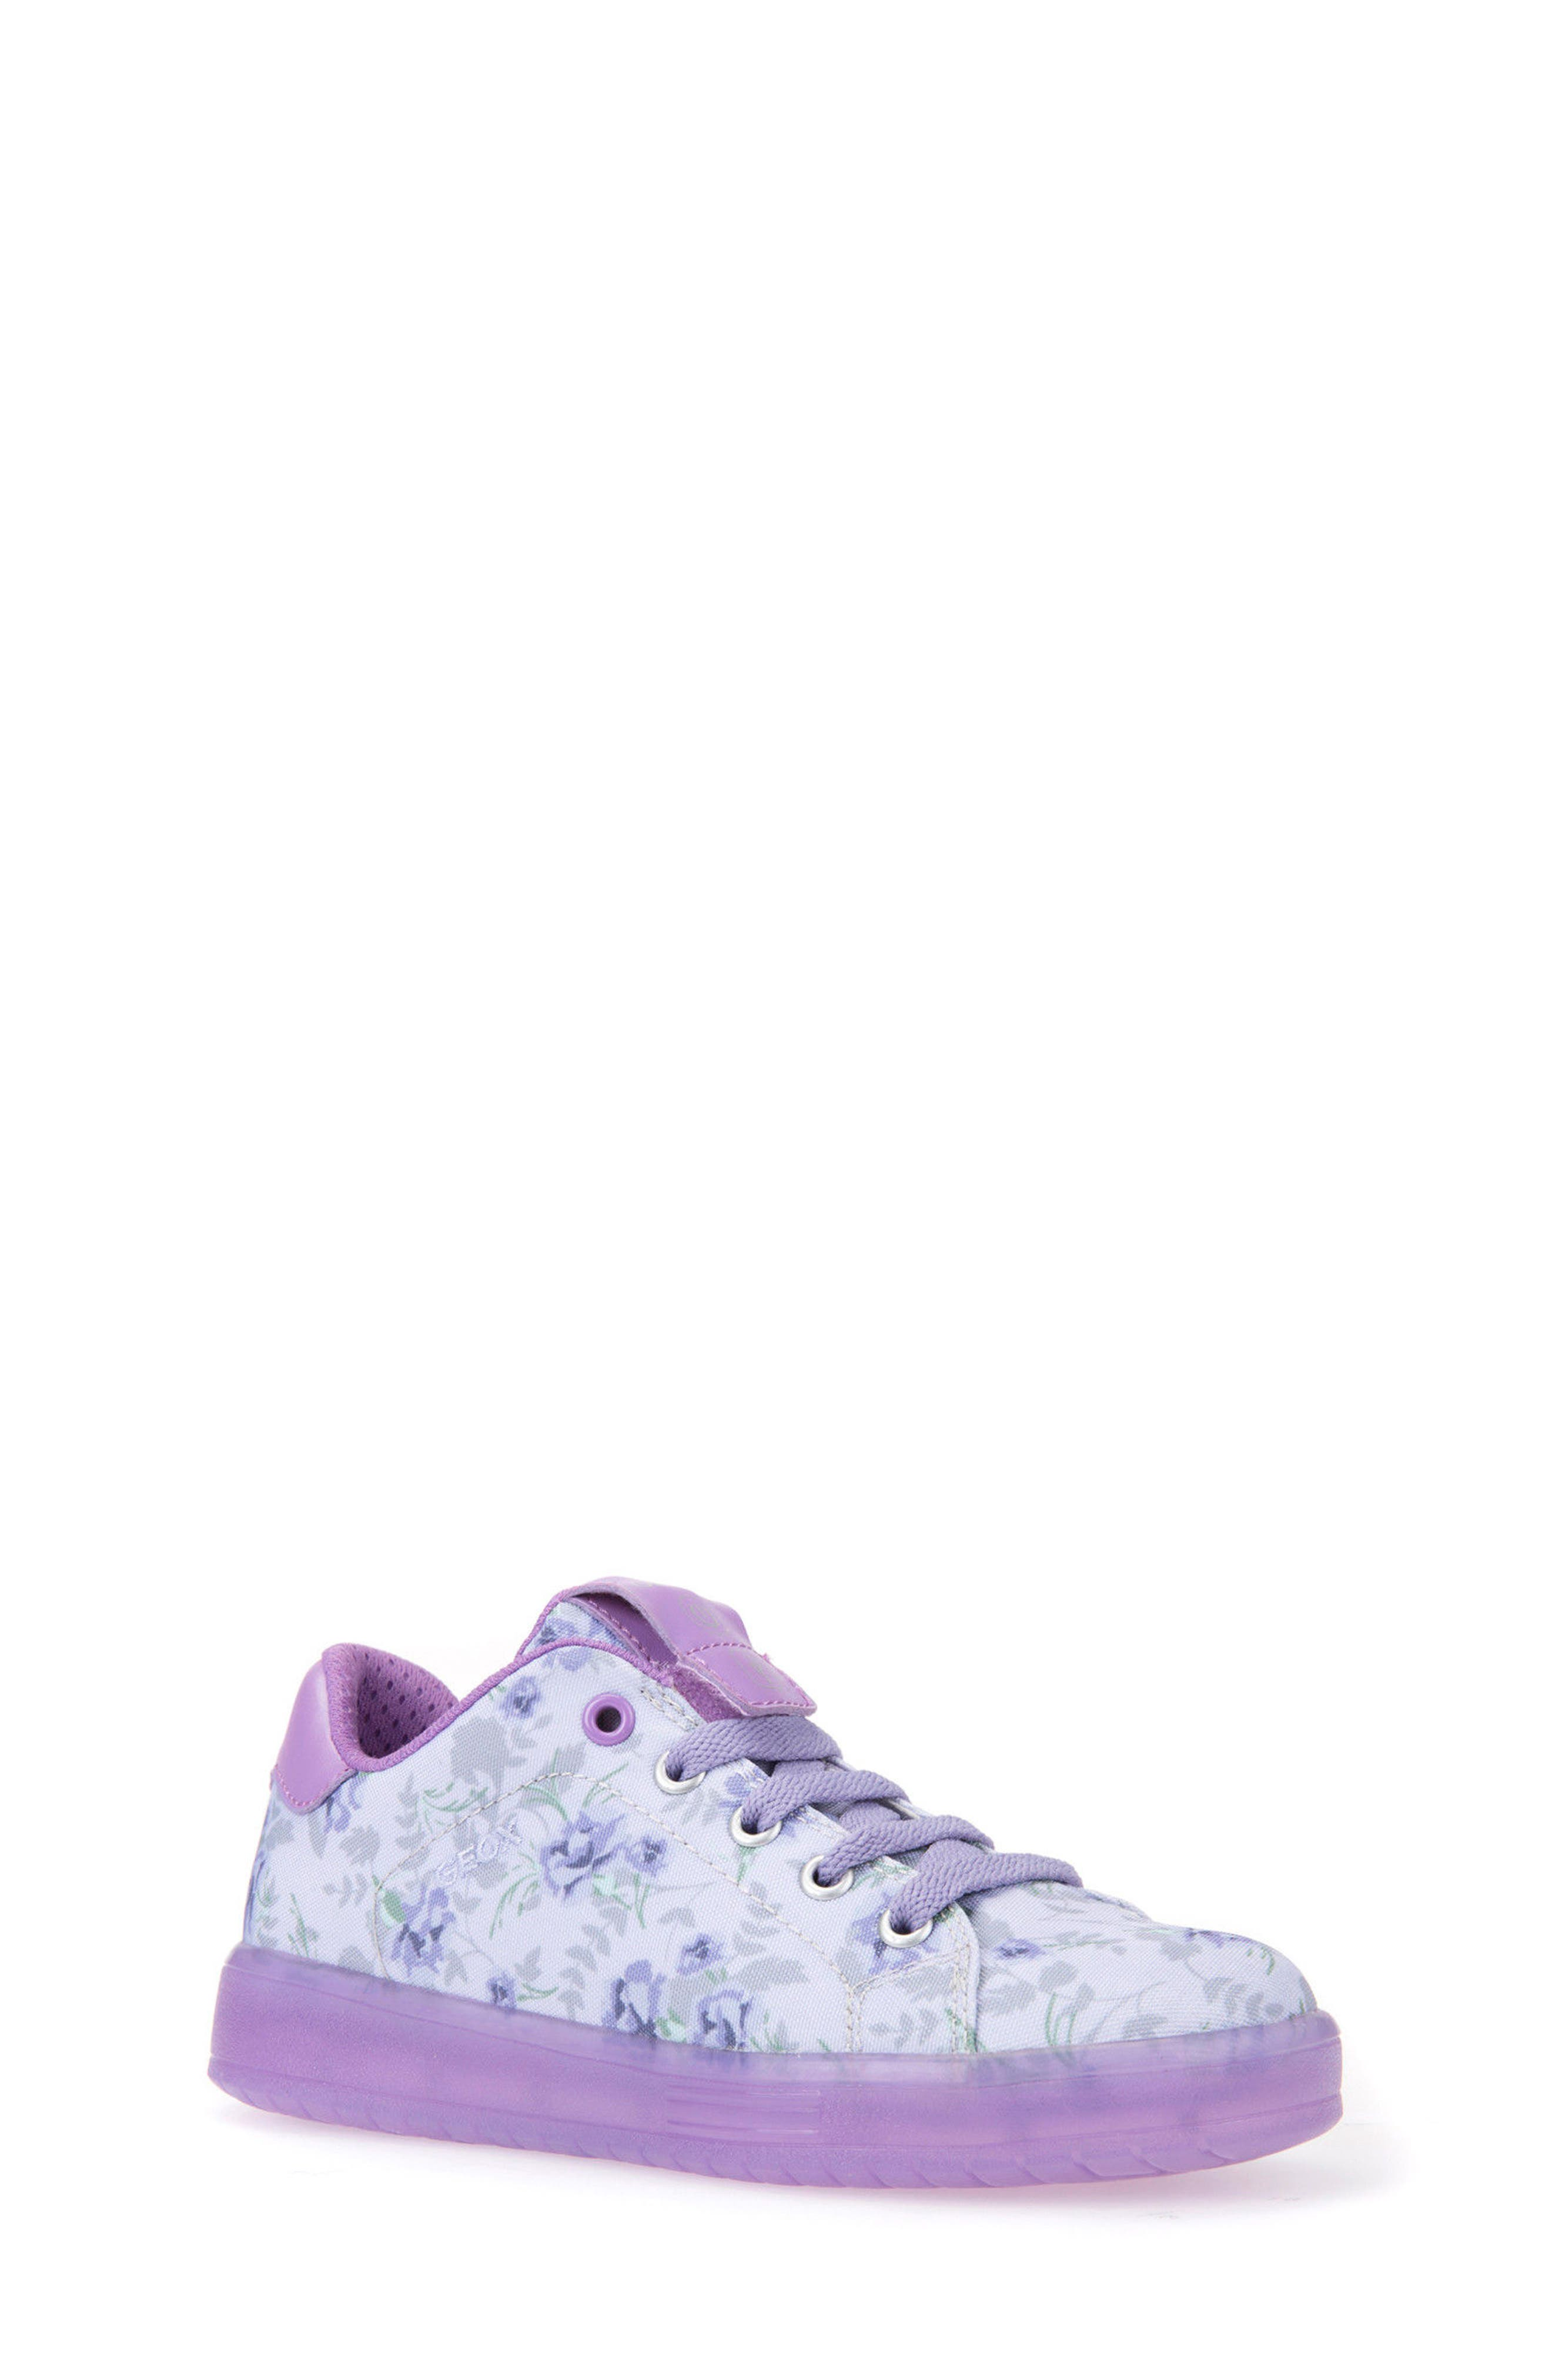 Kommodor Light-Up Sneaker,                         Main,                         color, LIGHT LILAC/ LILAC